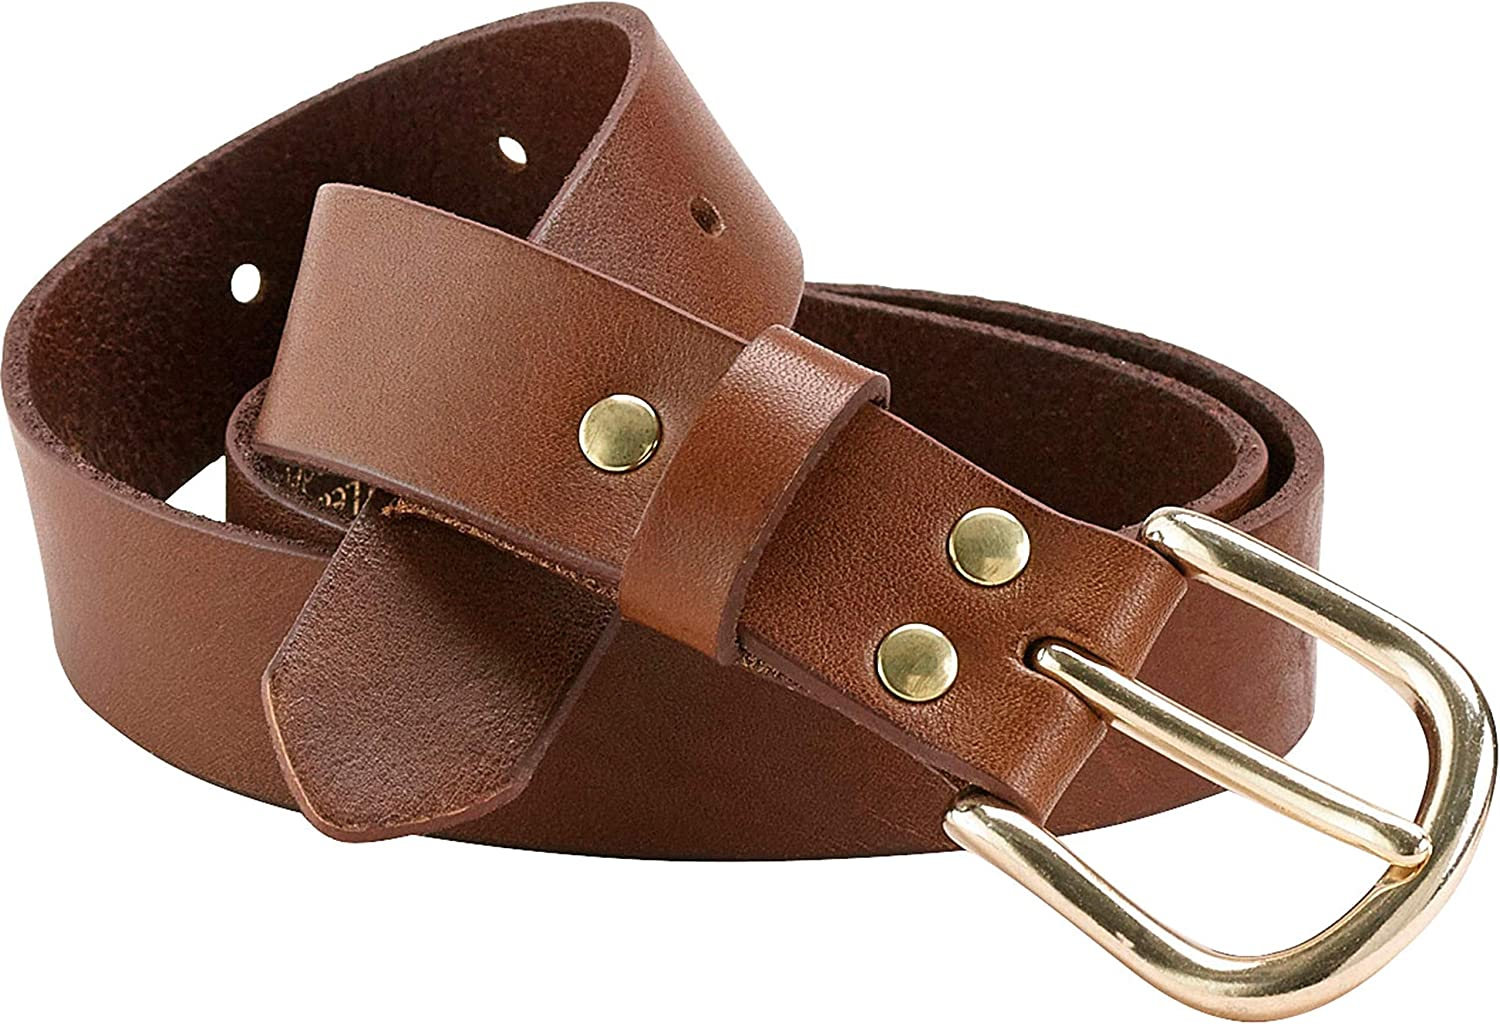 ellos Women's Max 80% OFF Plus Leather Size Some reservation Belt